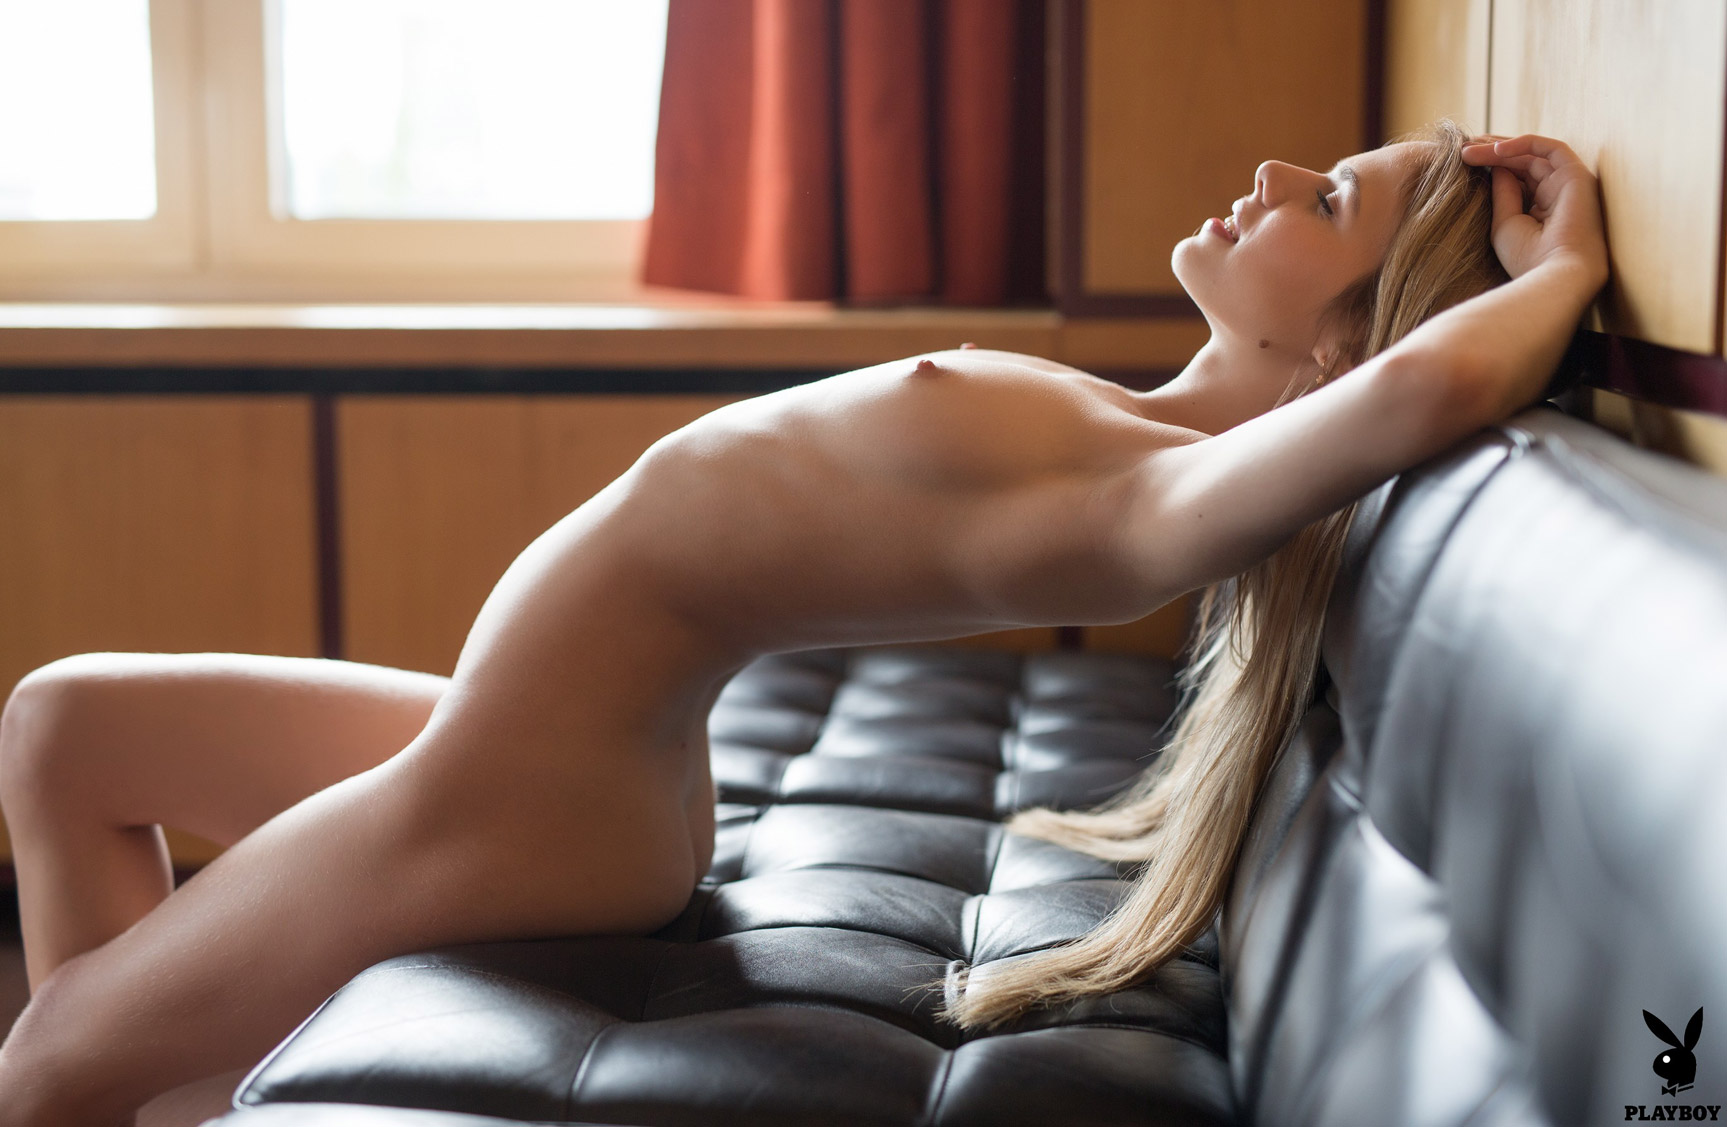 Aleksandra Smelova nude by Henrik Pfeifer / Luxury Lounge - Playboy Plus